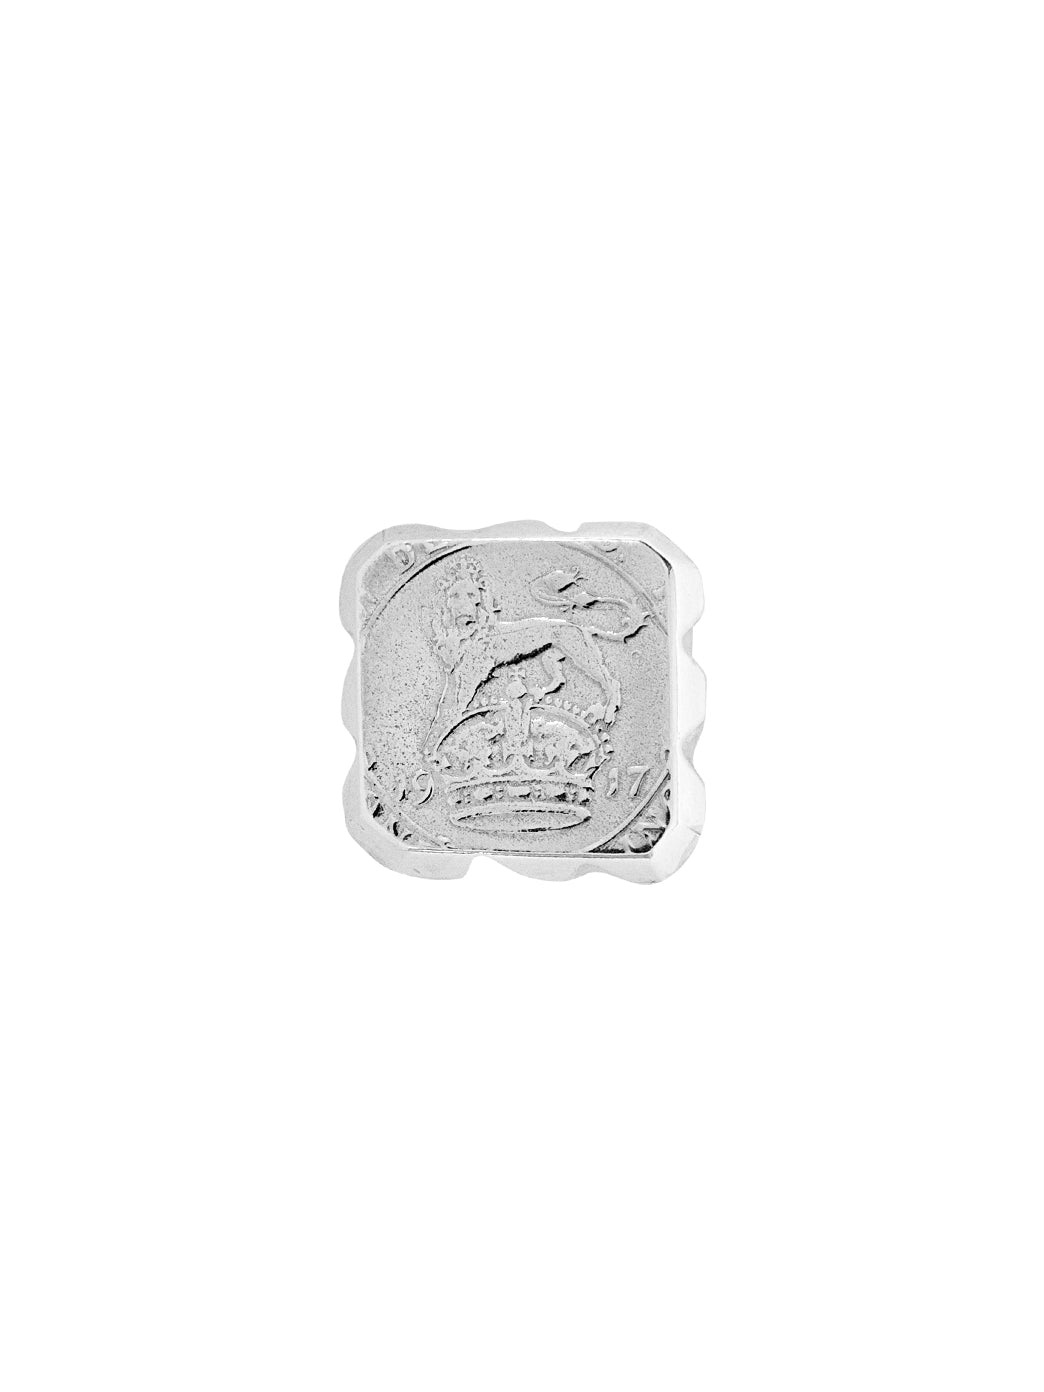 Fiorina Jewellery Men's Lion of Judah Ring